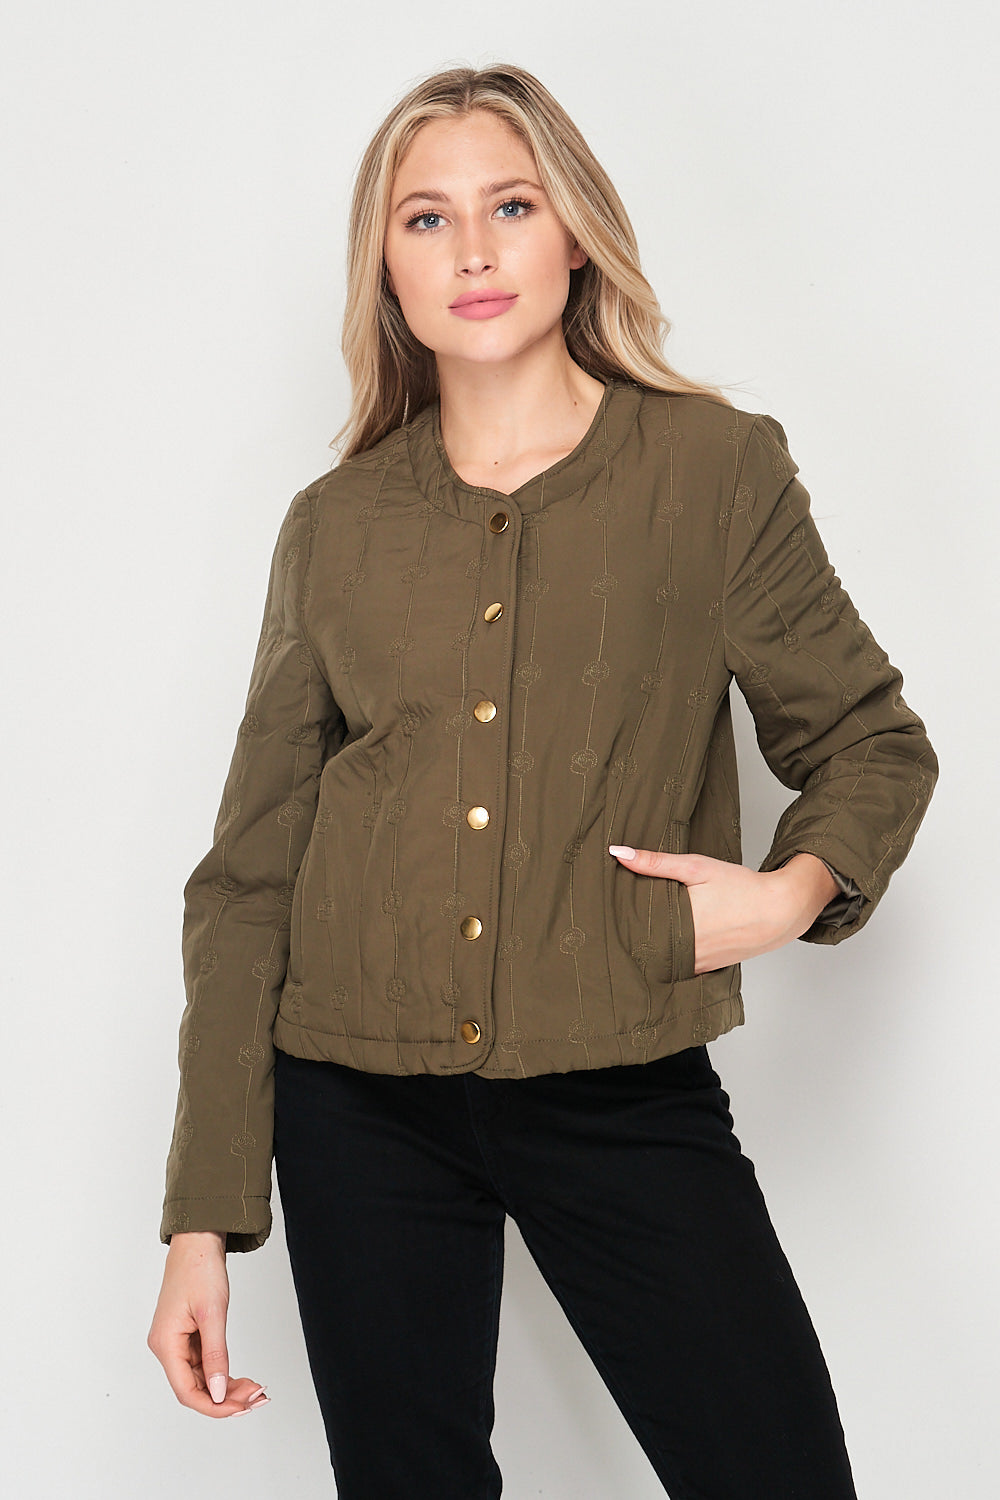 Blank Lewks | Rose Quilted Snap Button Jacket | Olive